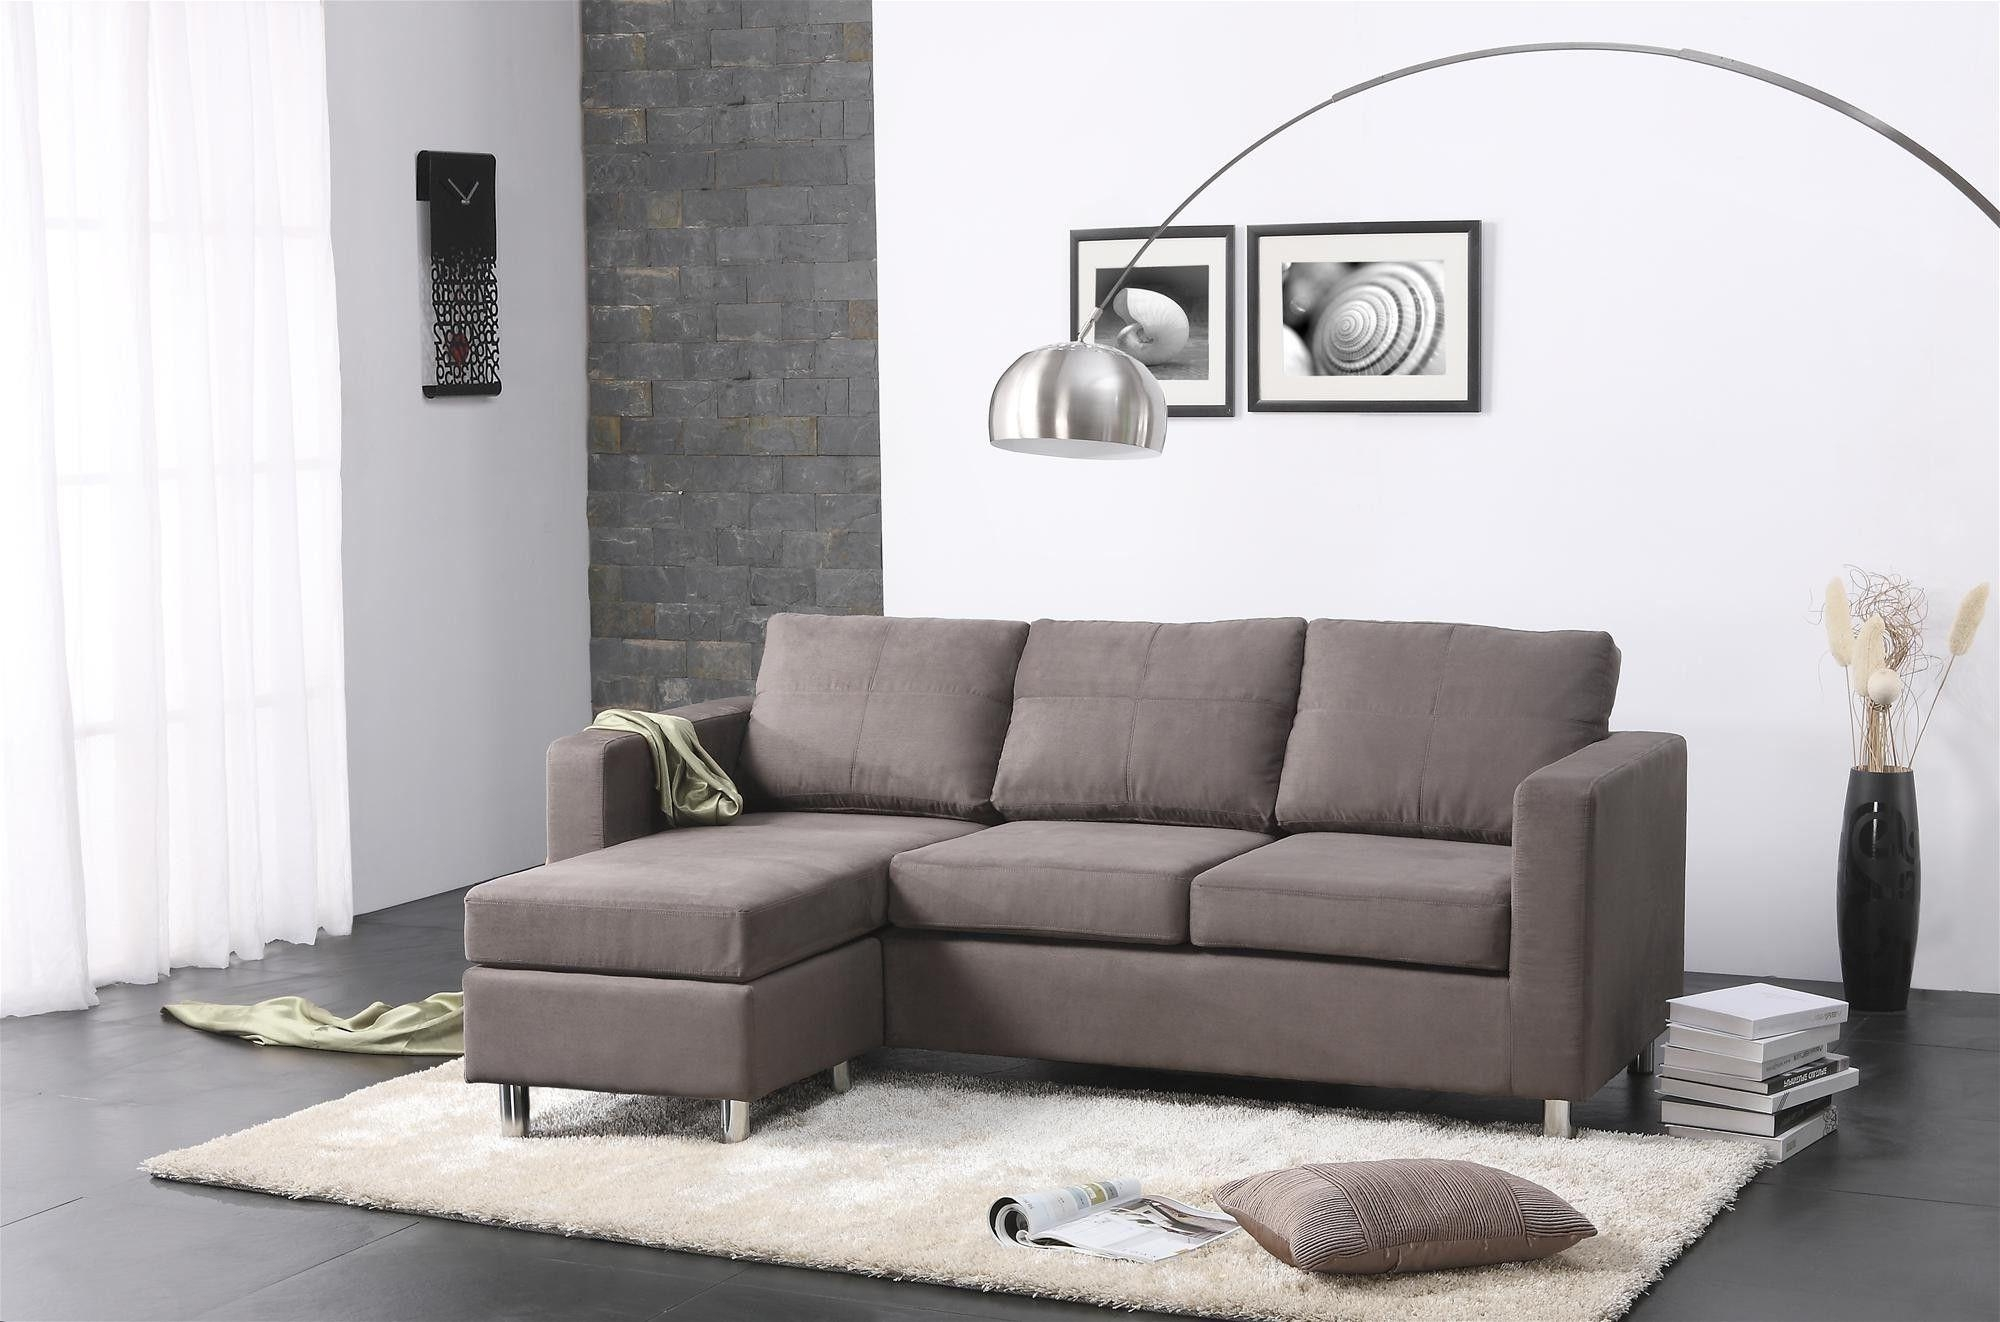 20 Inspirations Small Sectional Sofas For Small Spaces Sofa Ideas